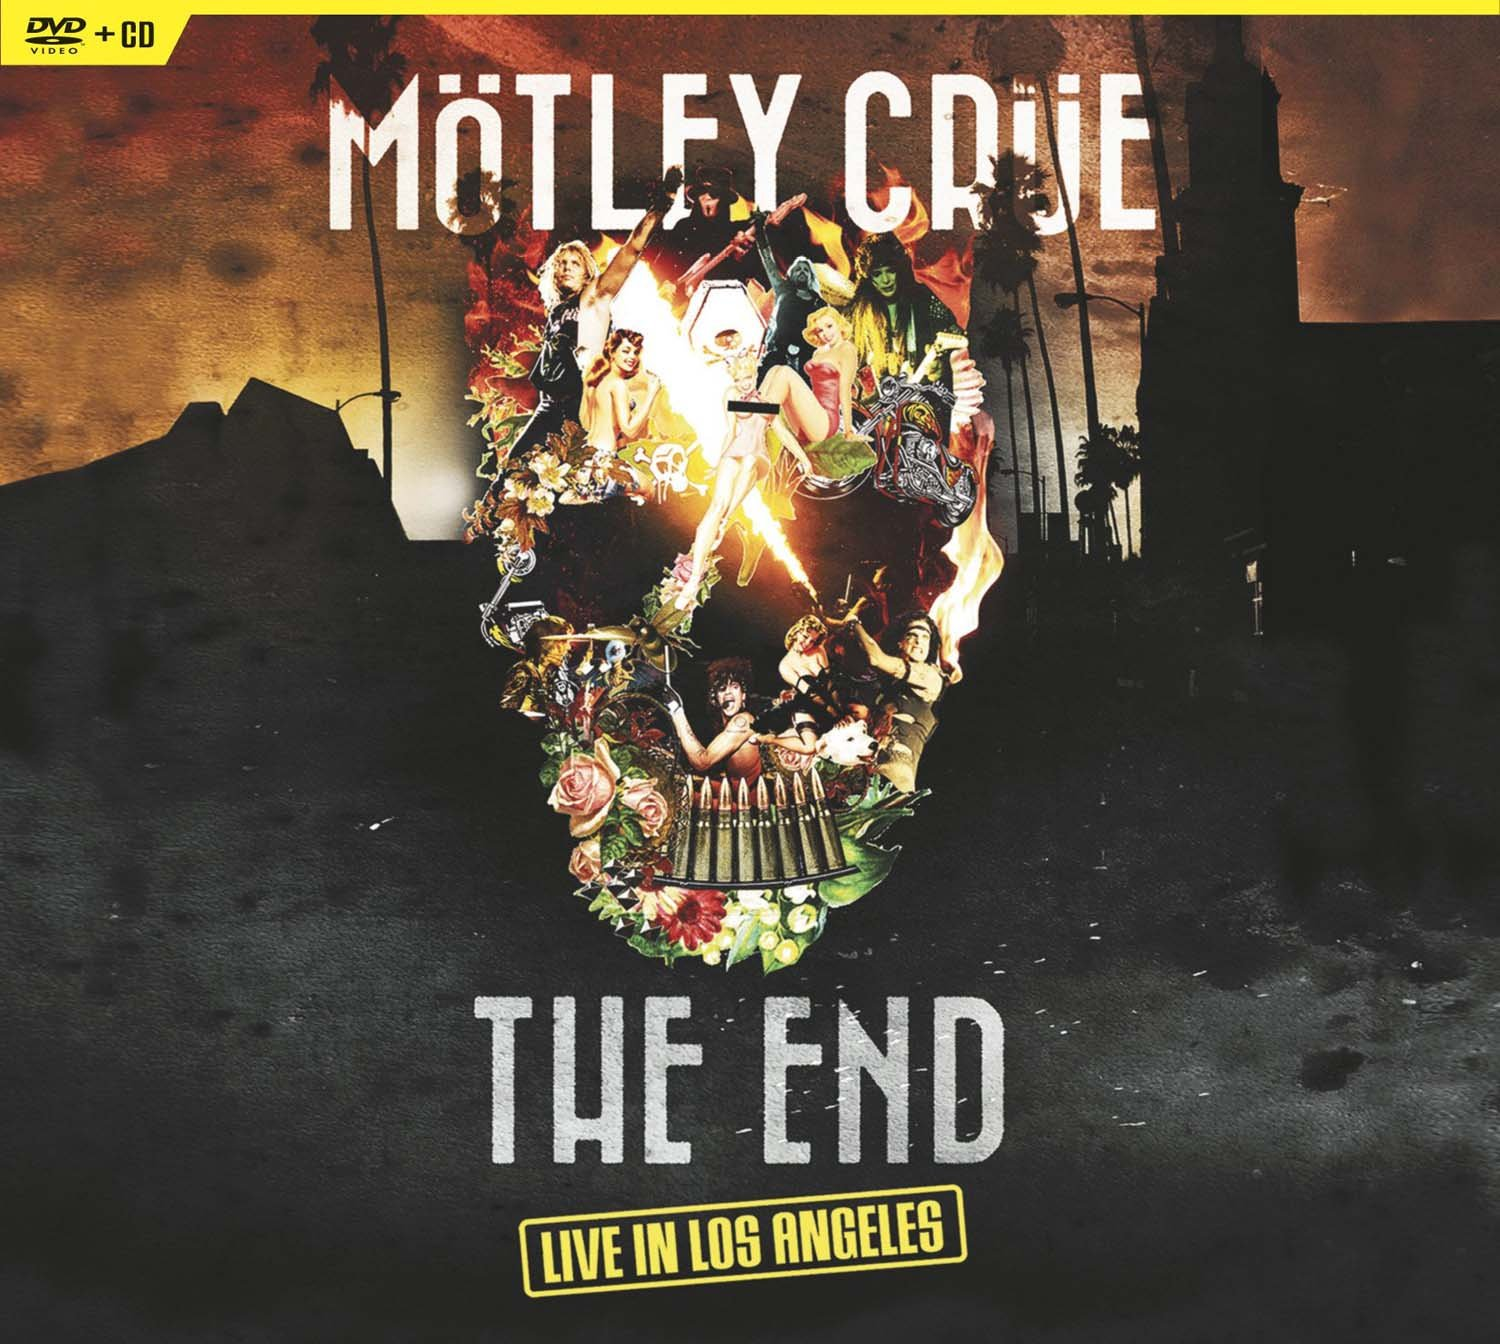 DVD : Motley Crue - The End: Live In Los Angeles (With CD, 2 Disc)